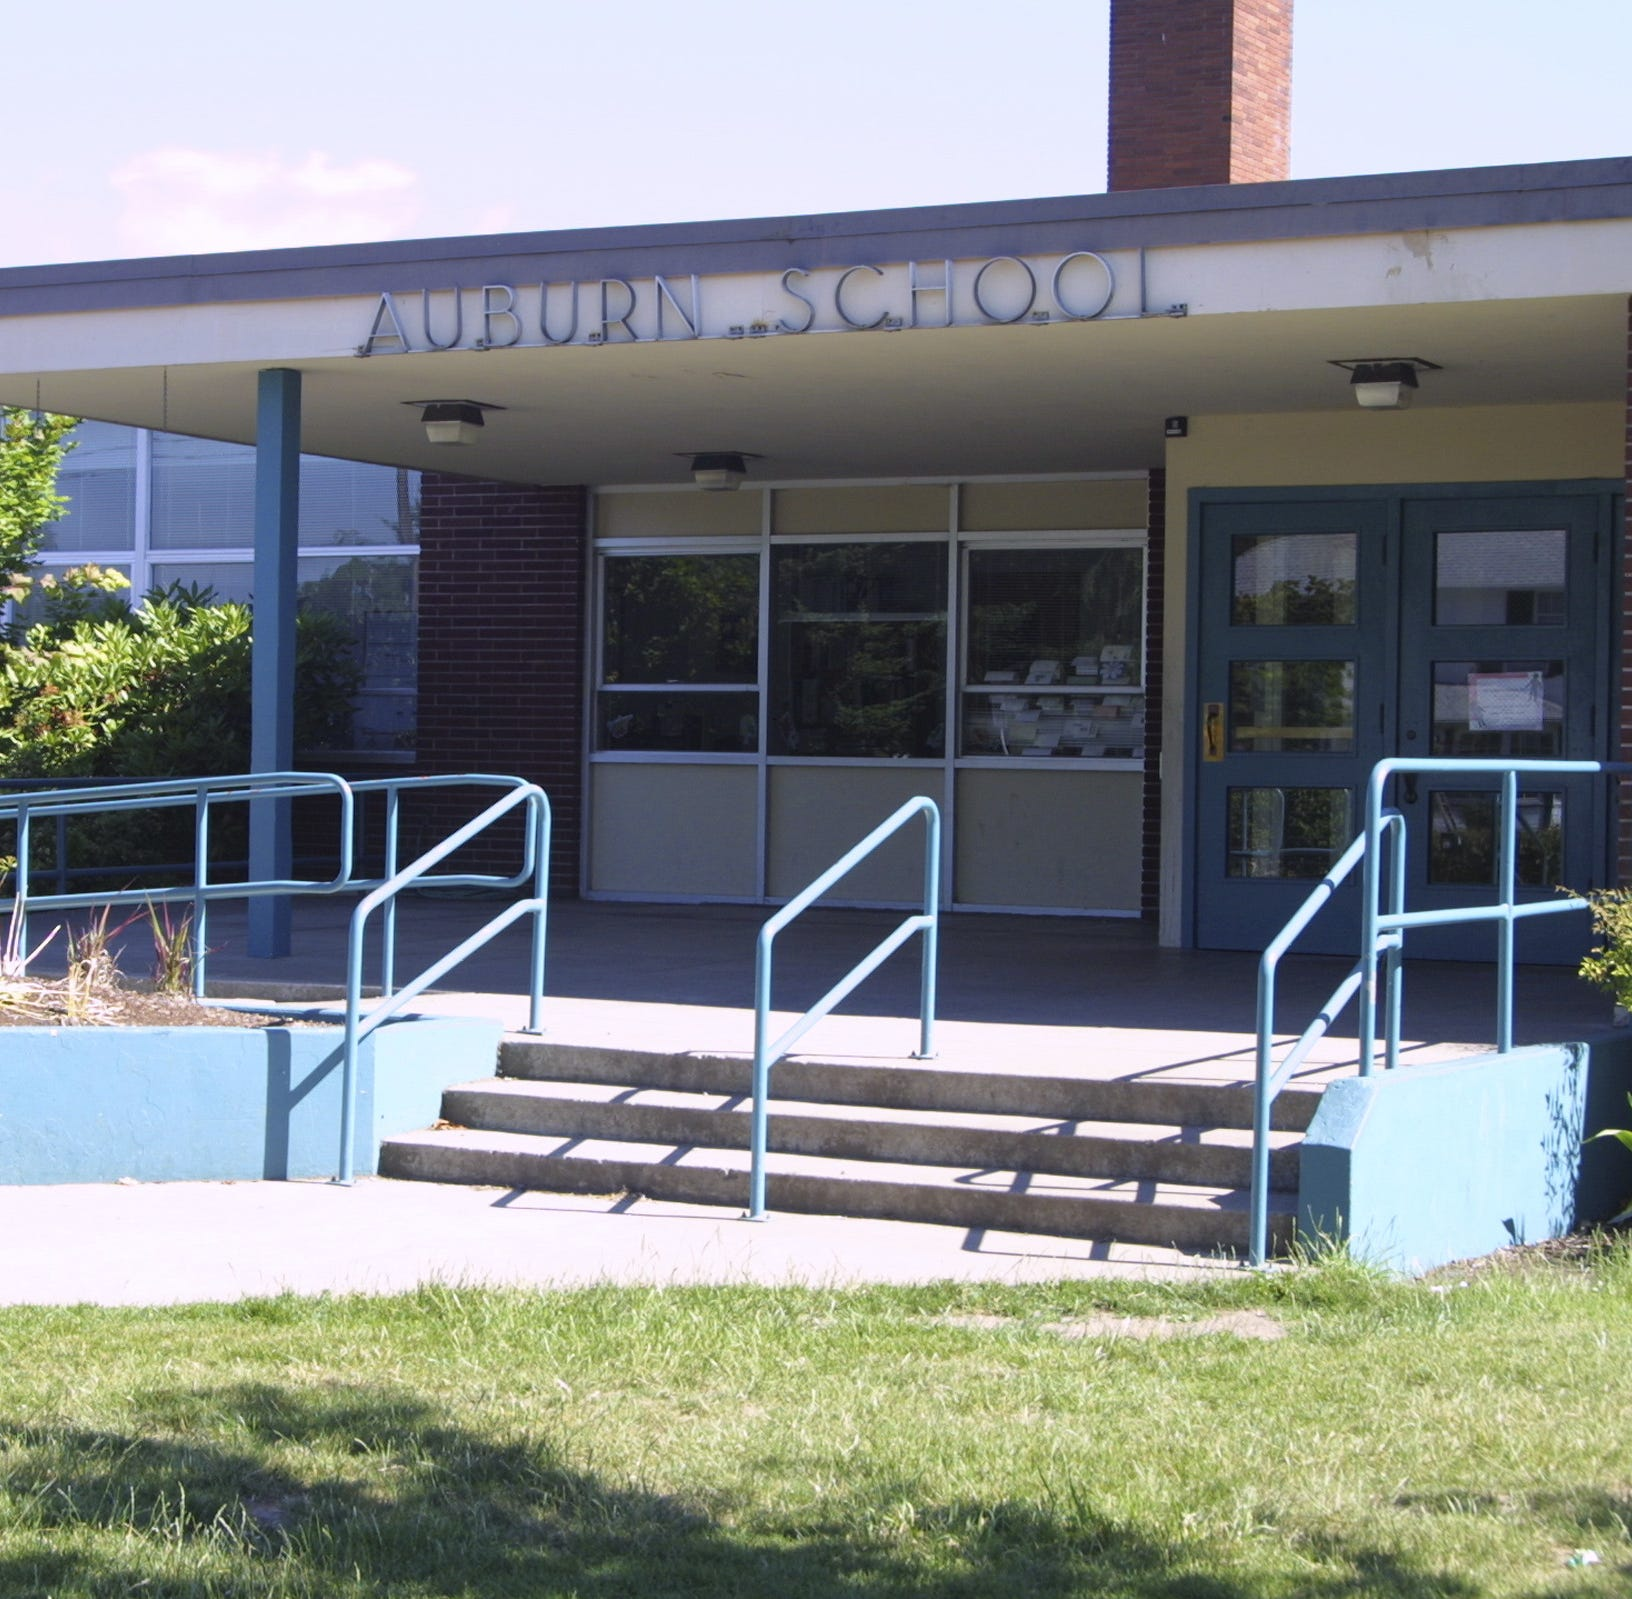 Salem-Keizer schools moves to acquire land near Auburn Elementary